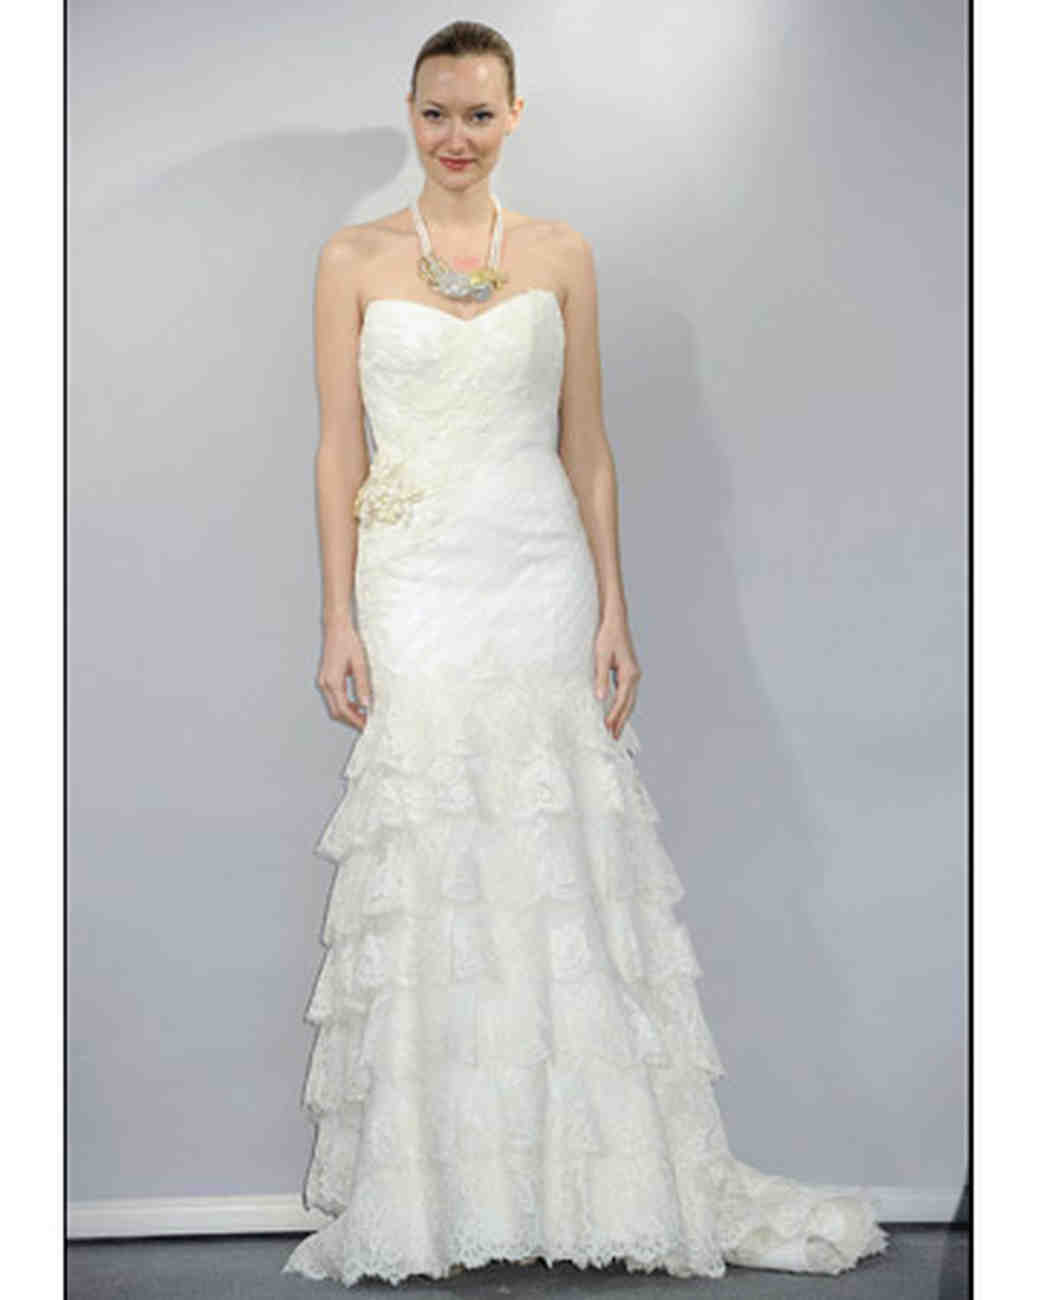 Modern Lace Wedding Gowns 2014 Model - Top Wedding Gowns ...